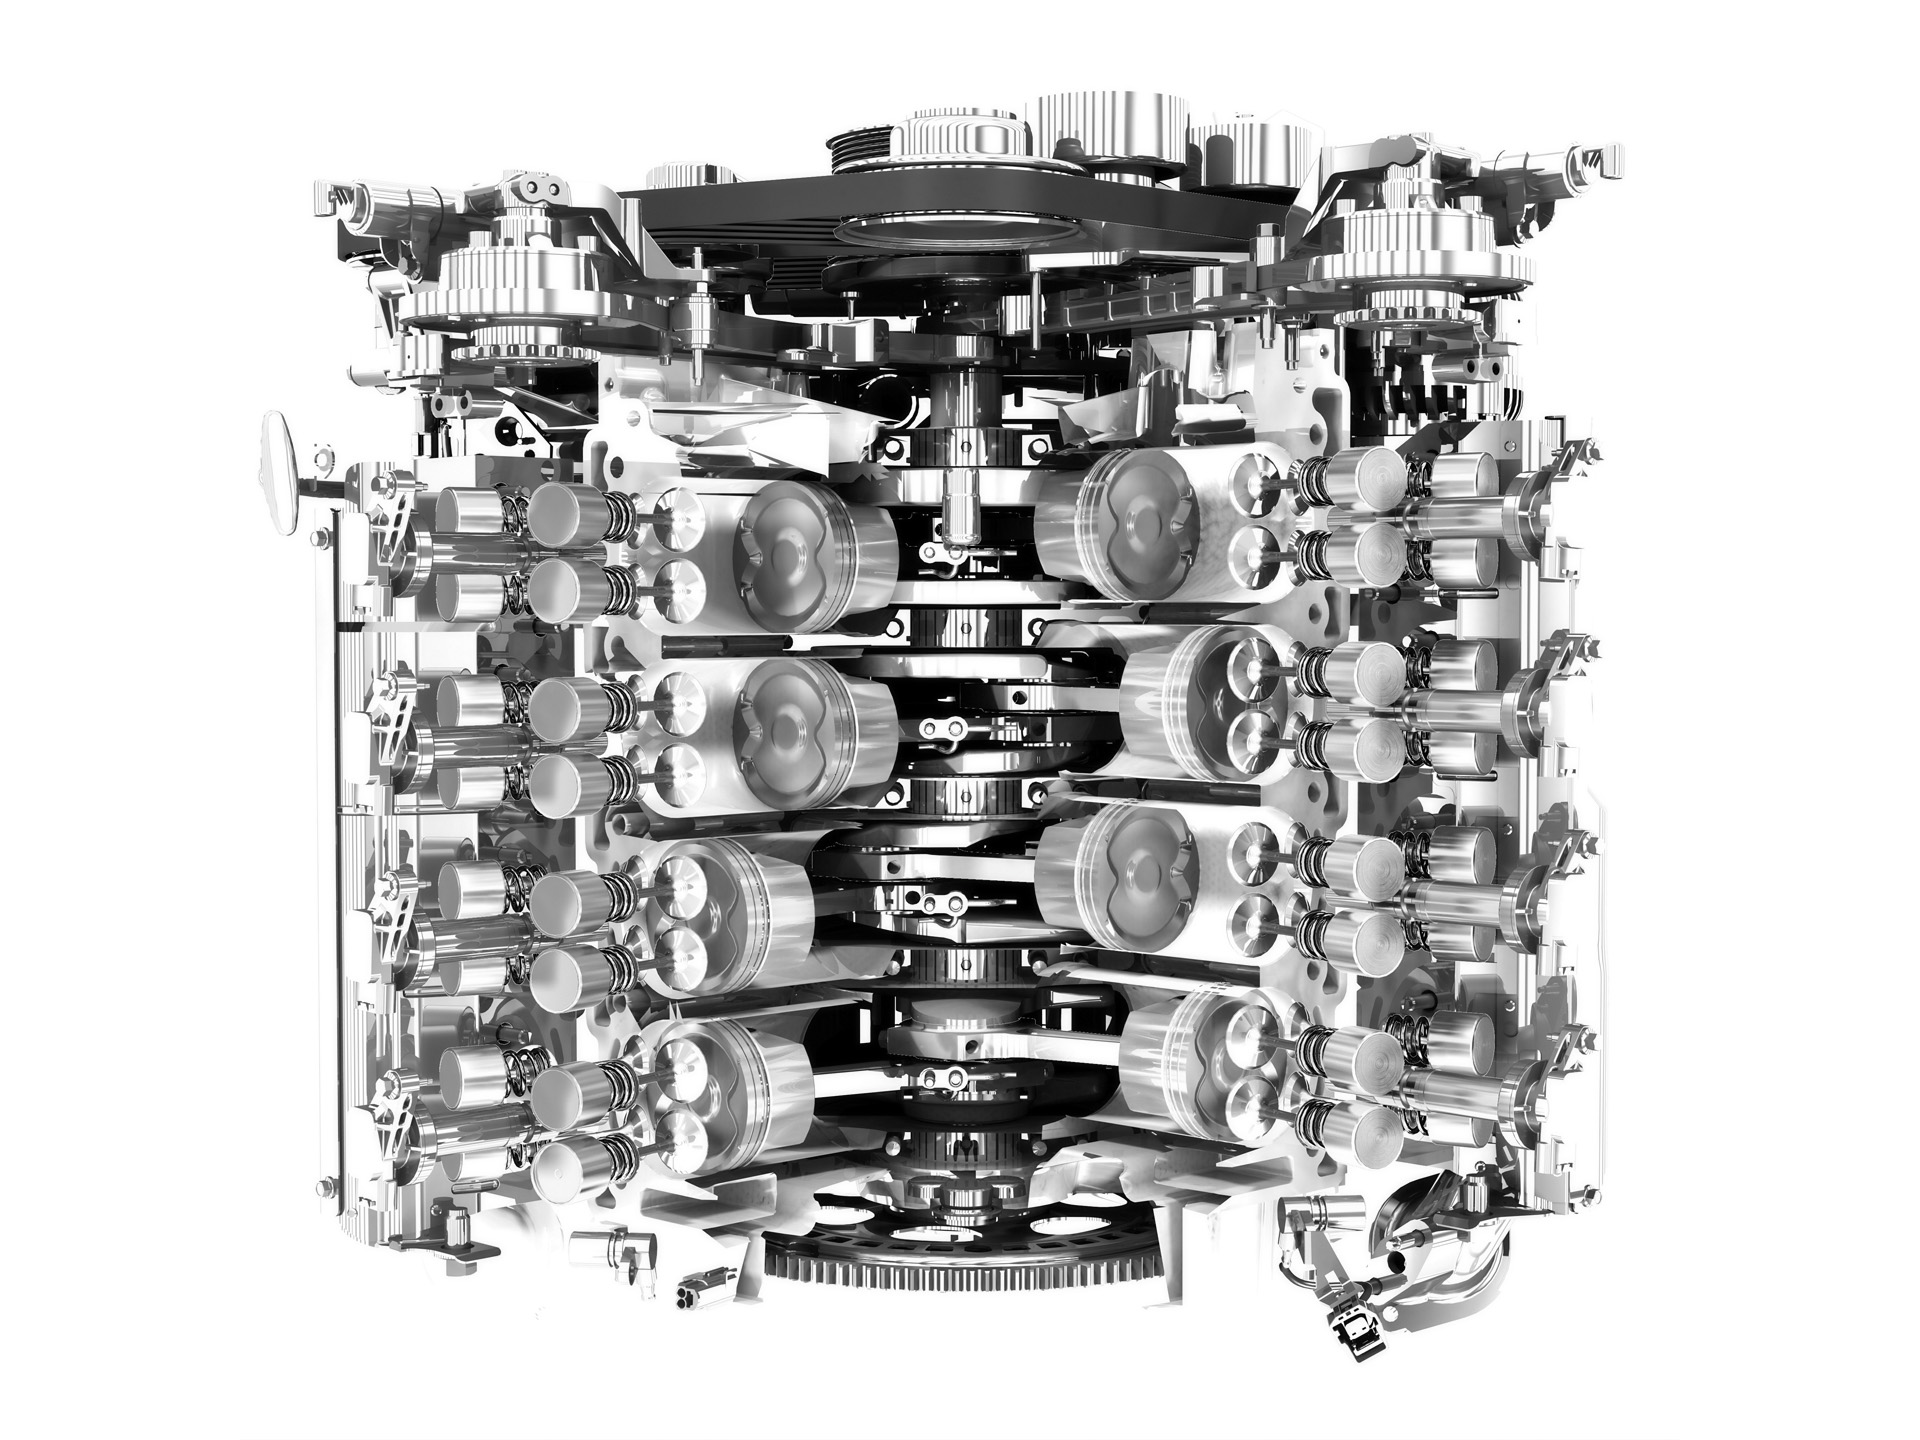 Sample C1182 Engine